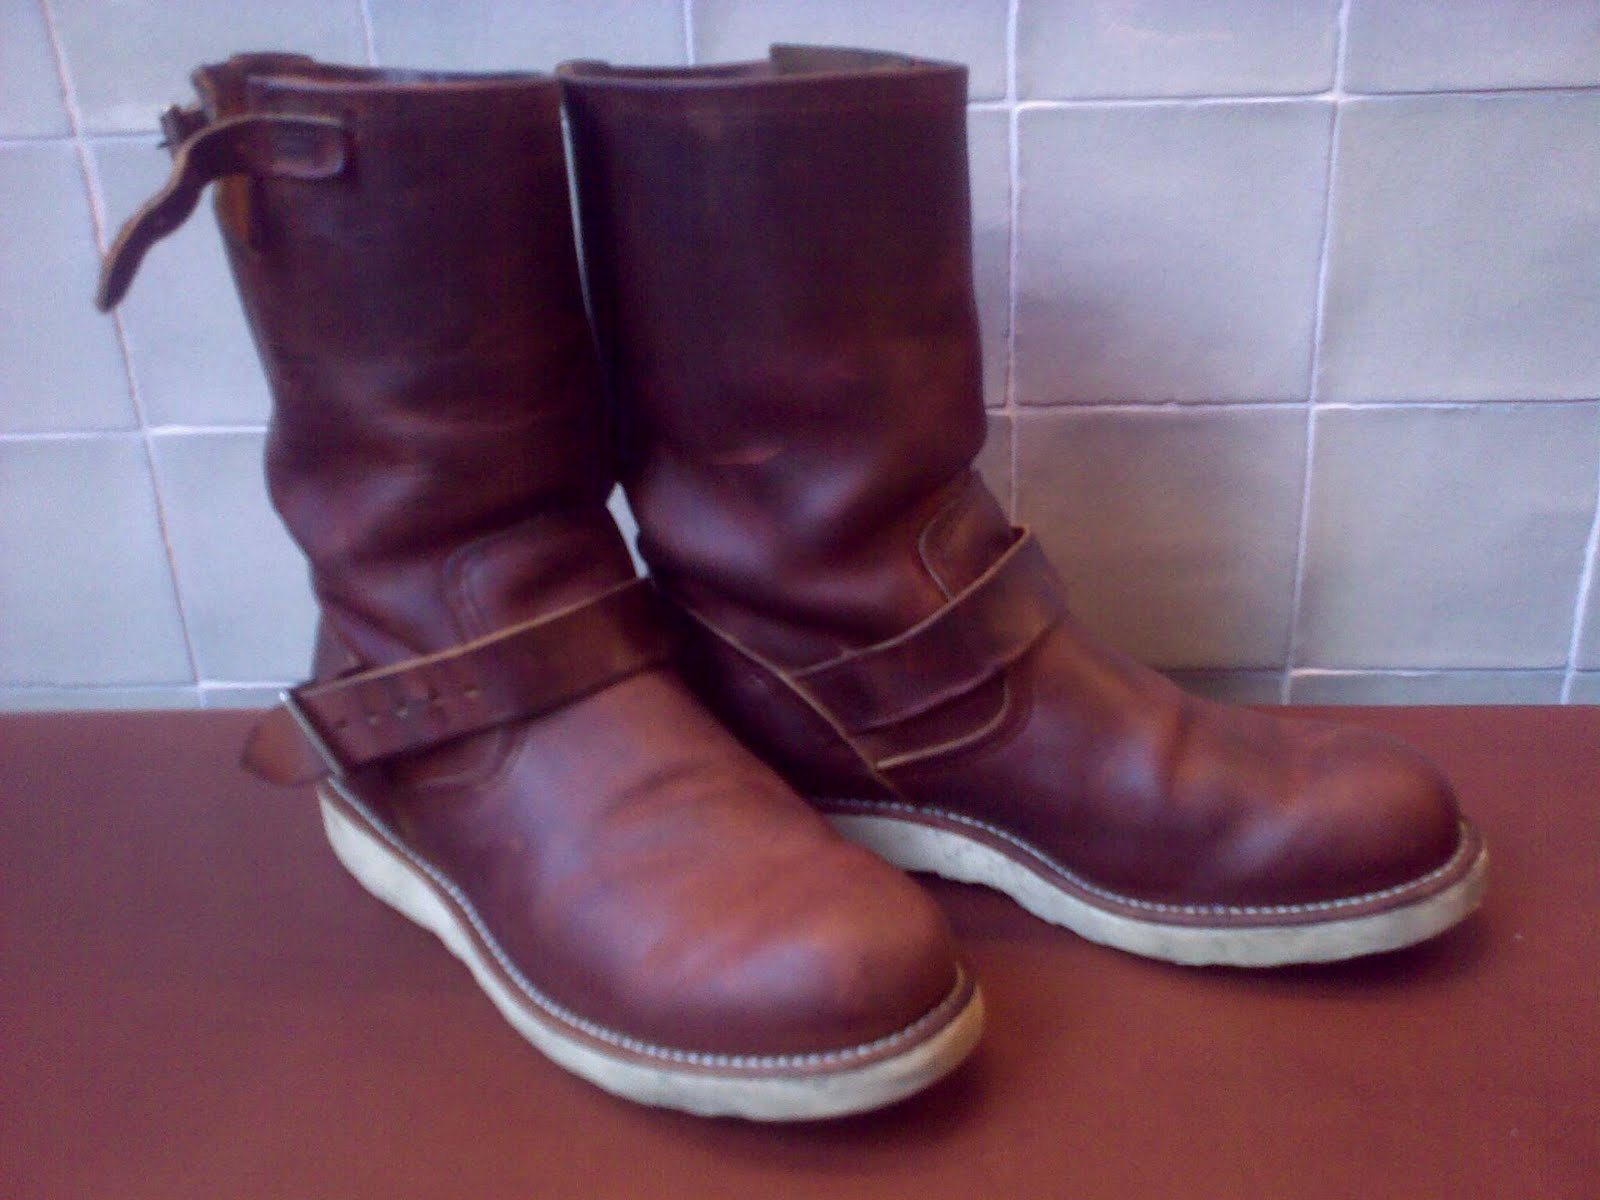 A Swan s Wing Dyed in Red  Mink Oil on Rough and Tough 6f6087100fe5e